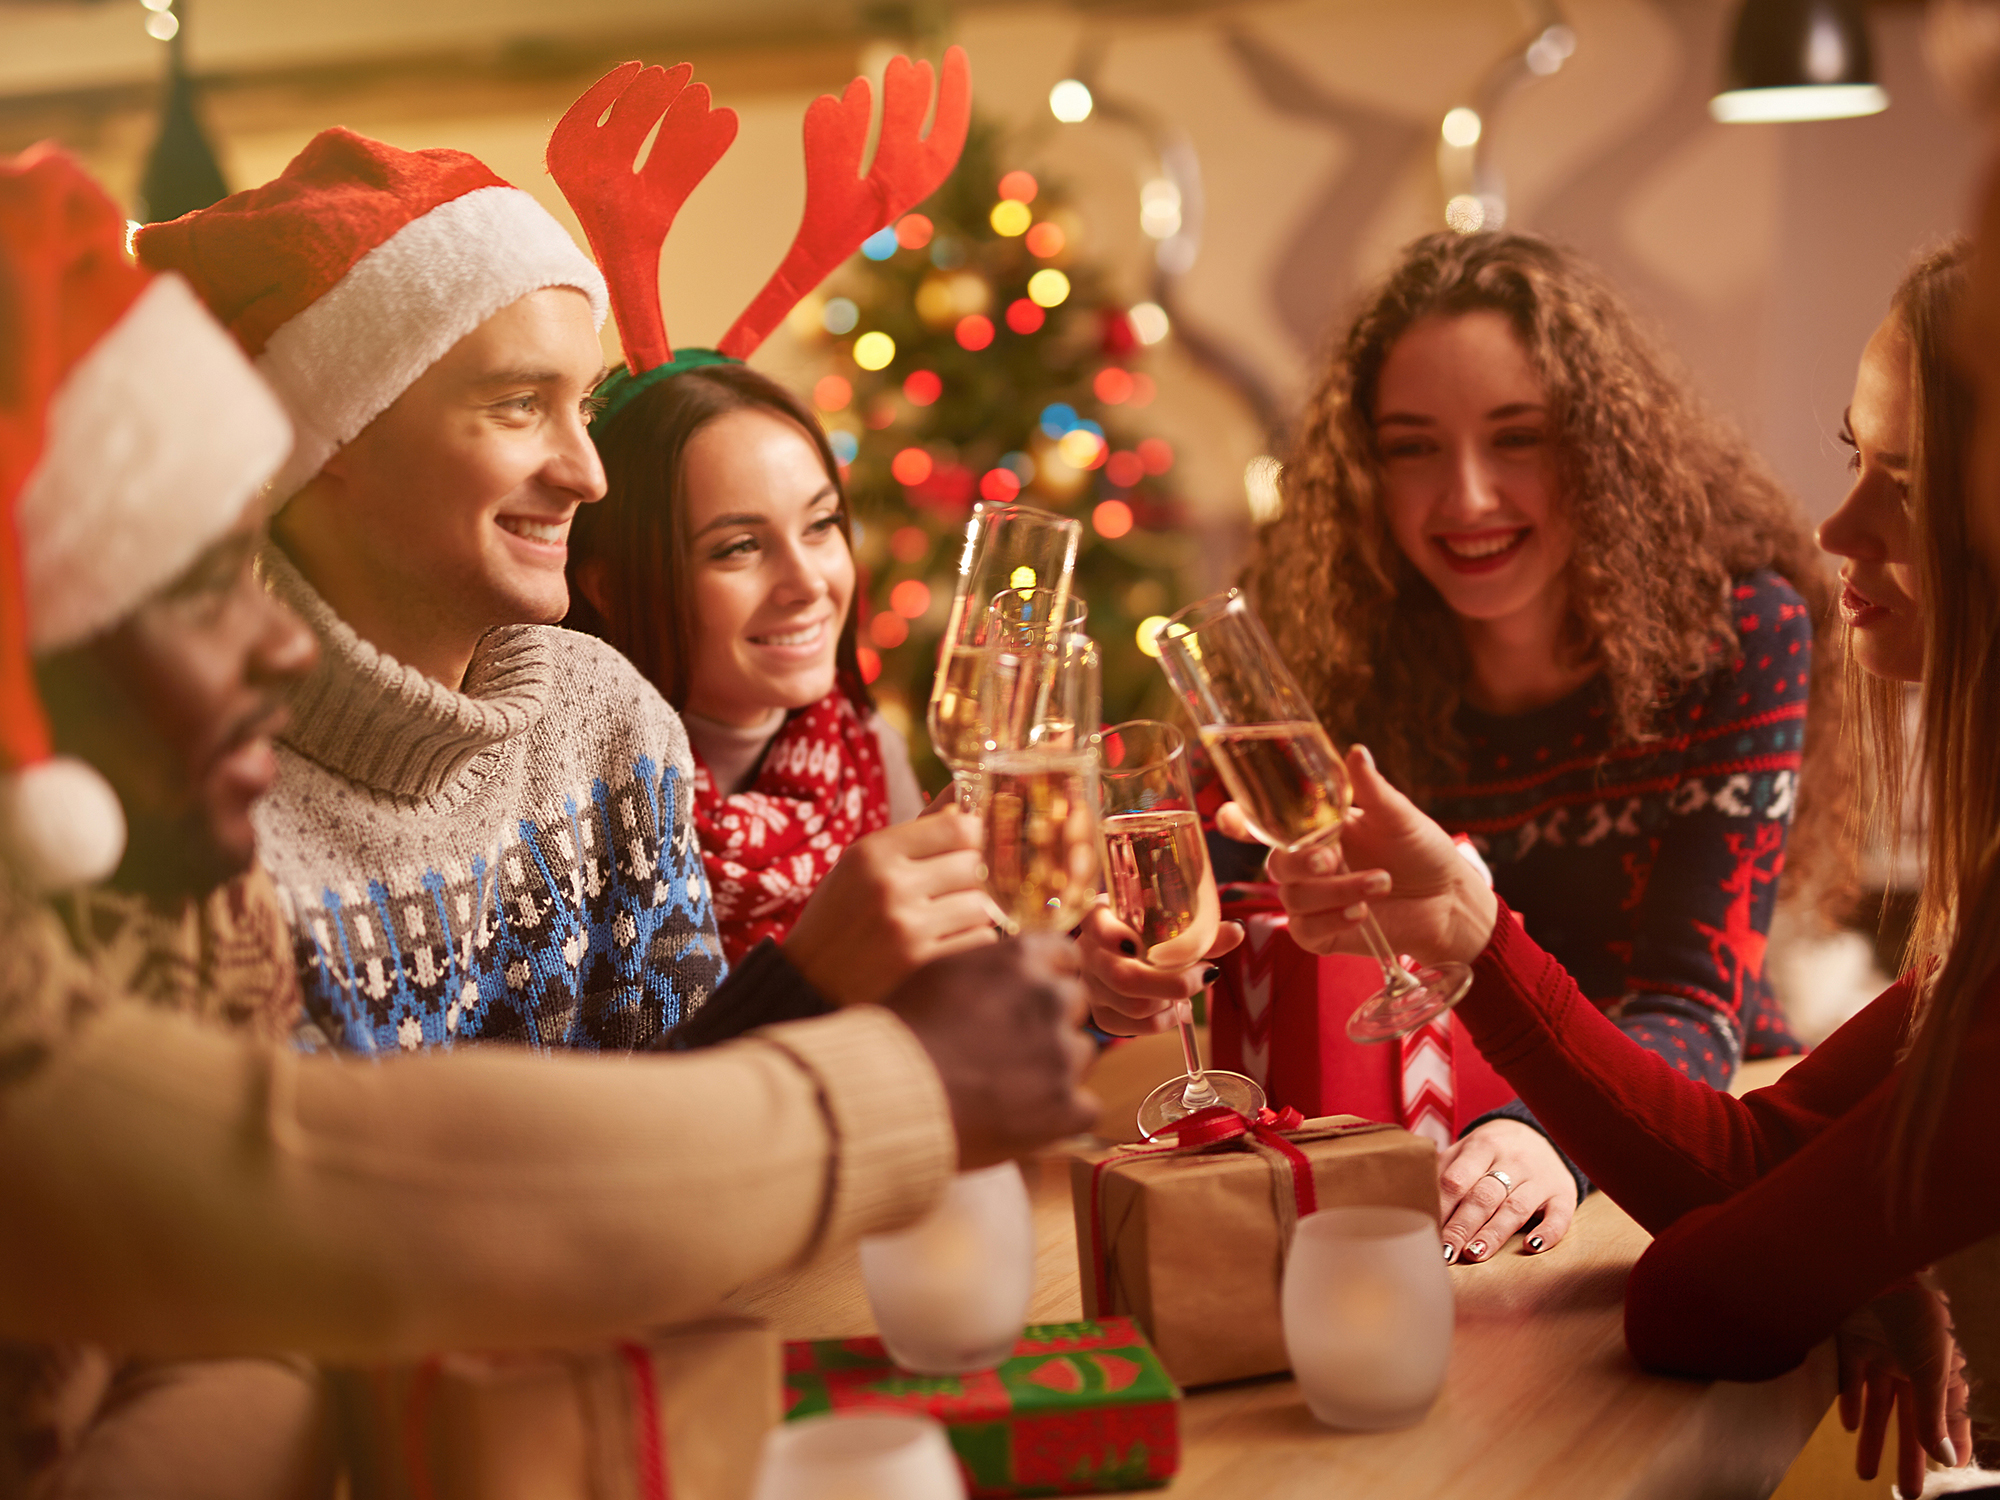 A Healthy Guide To Drinking Holiday Alcohol Easy Health